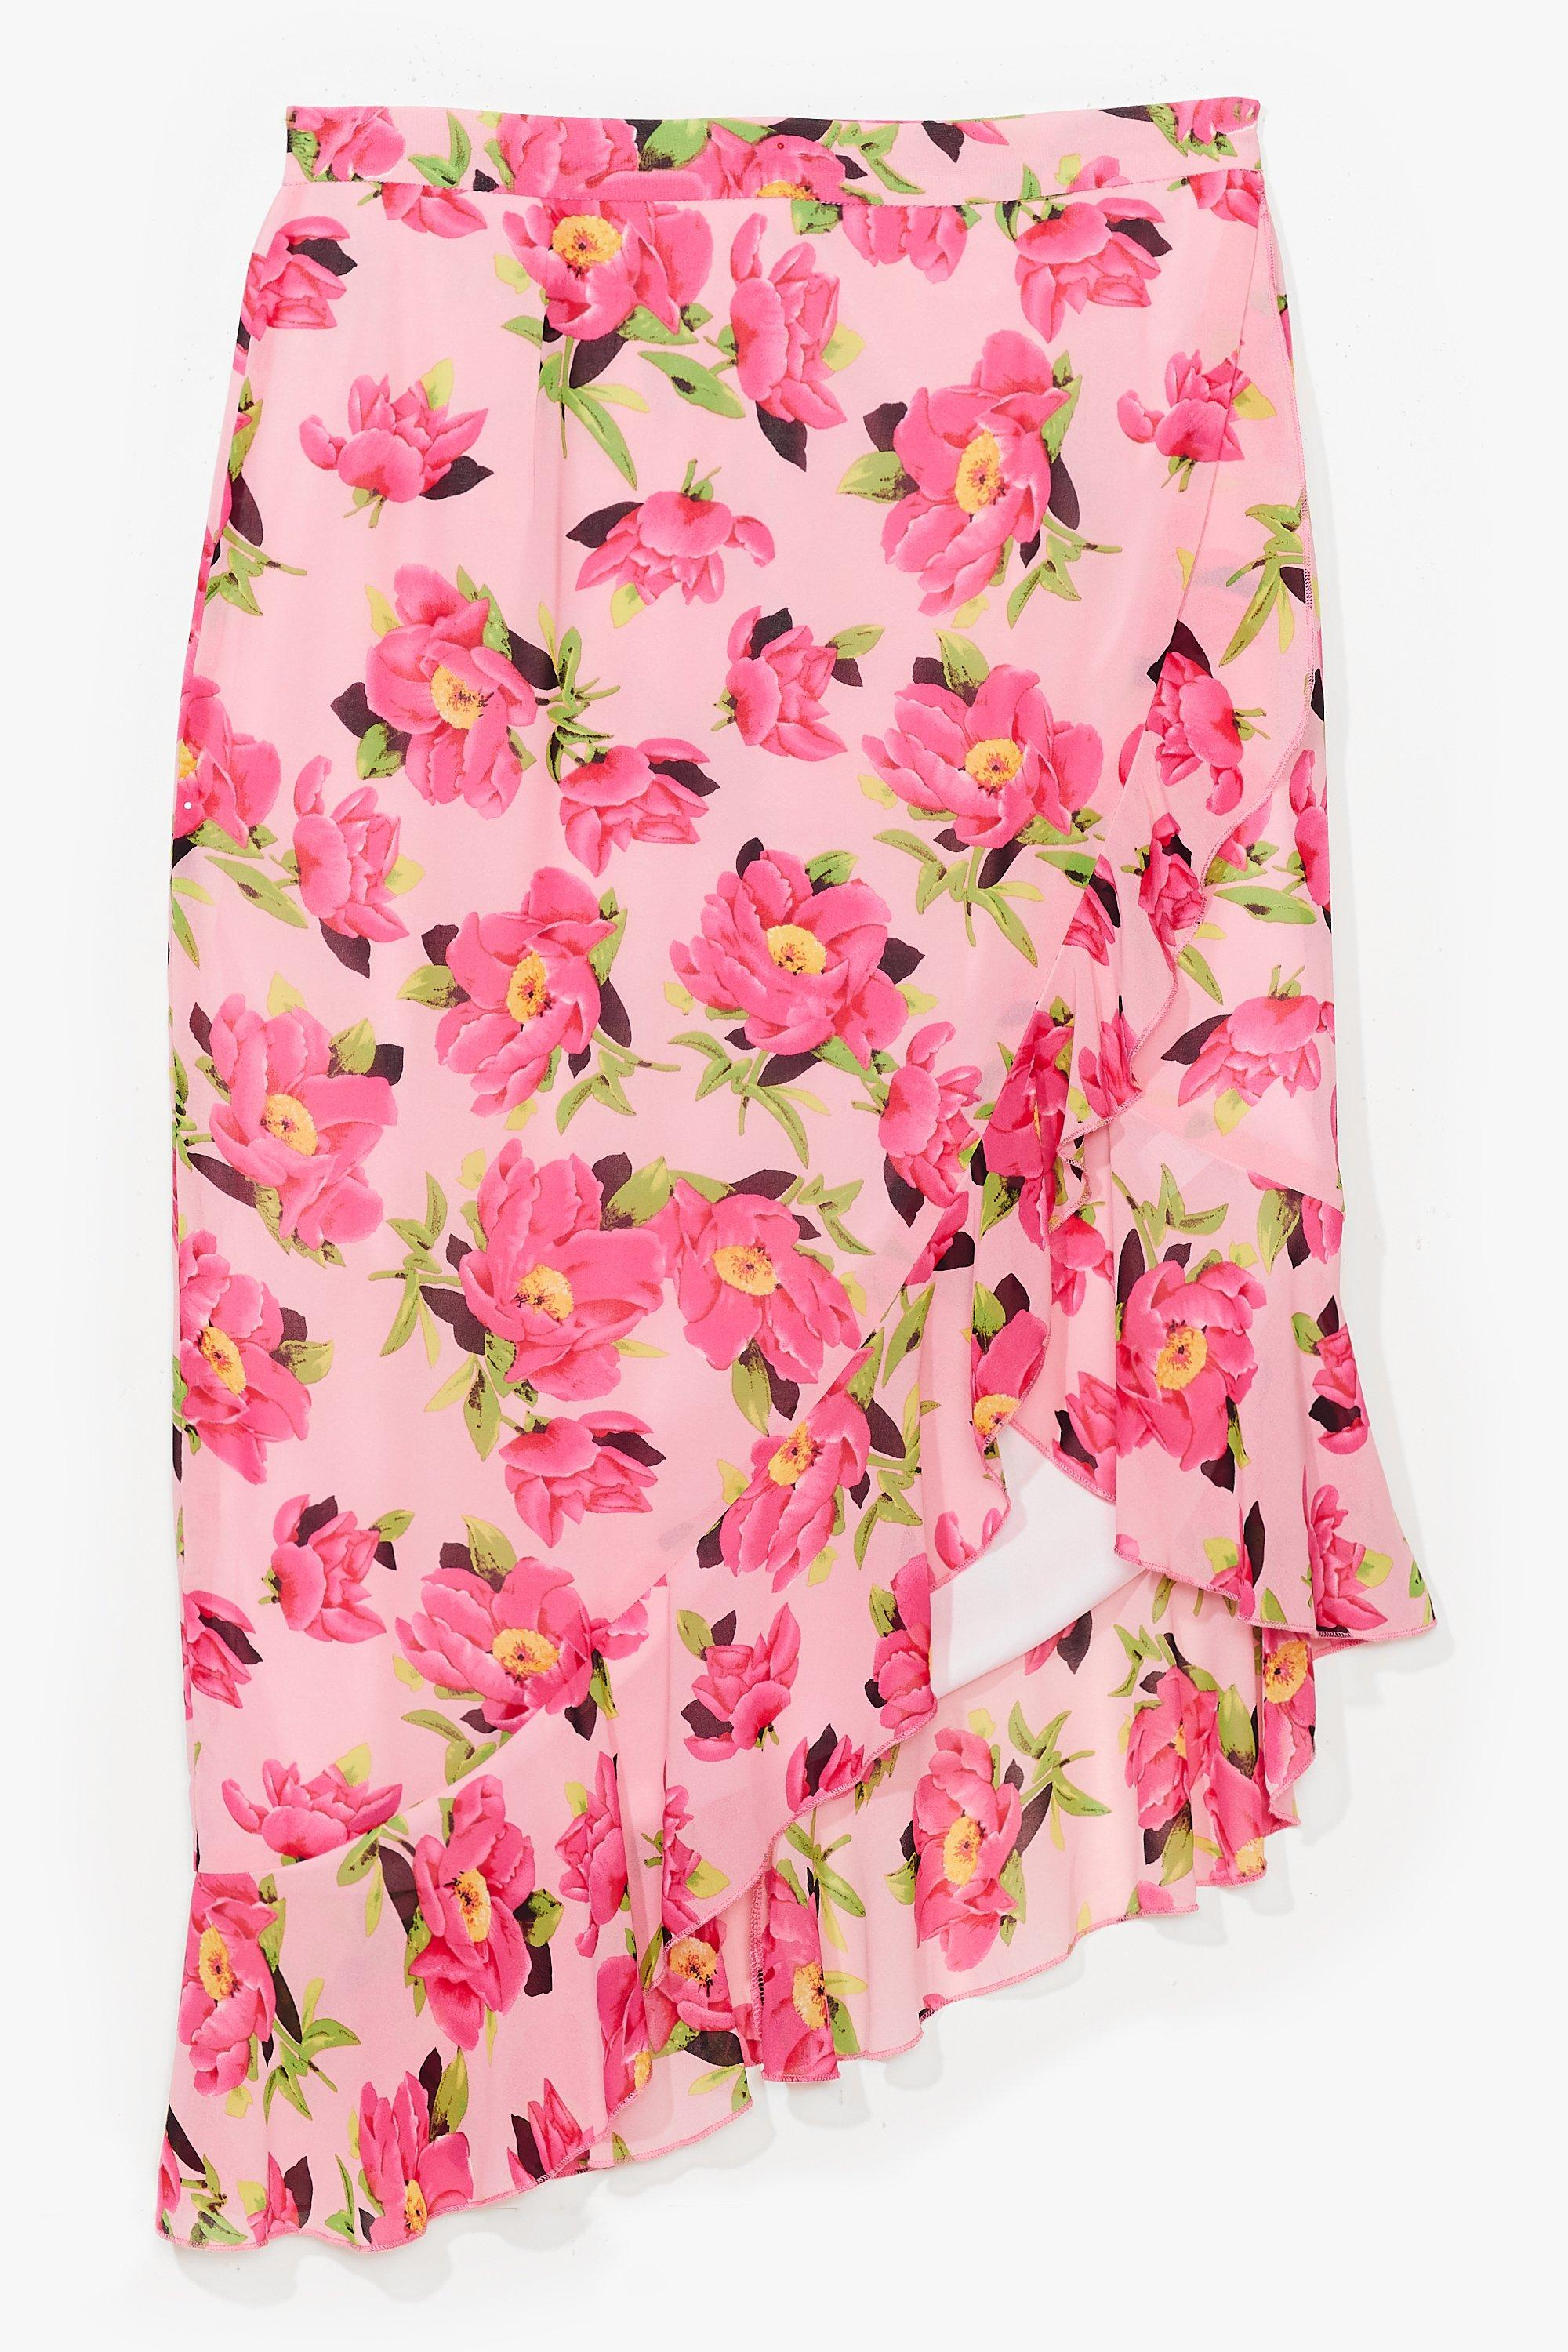 Frill Don't Care Plus Floral Skirt 12